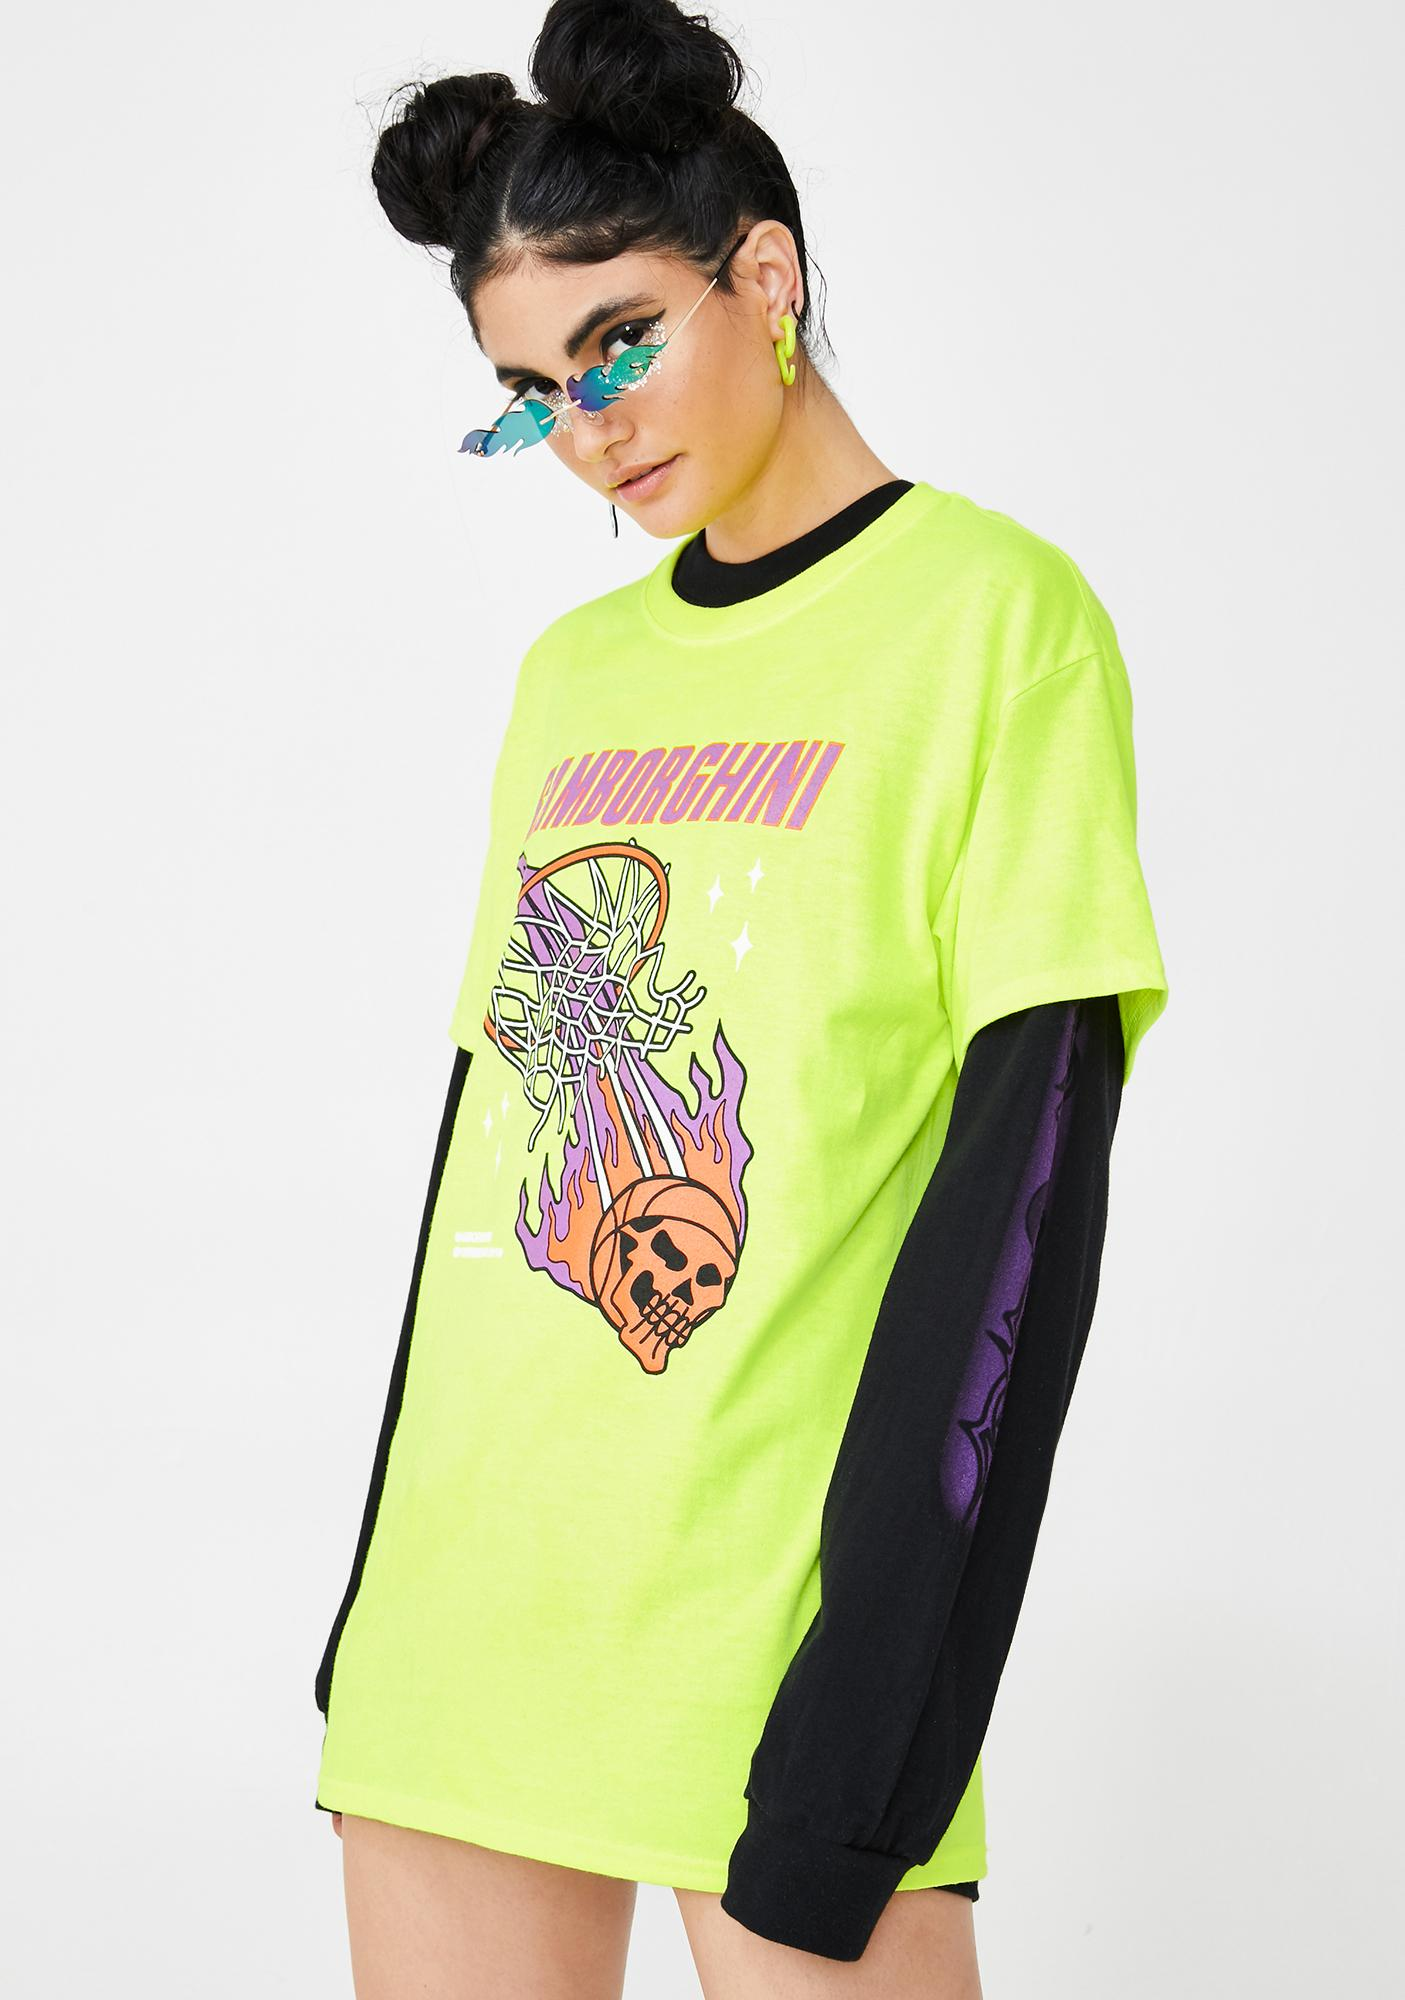 Samborghini Basketball Graphic Tee